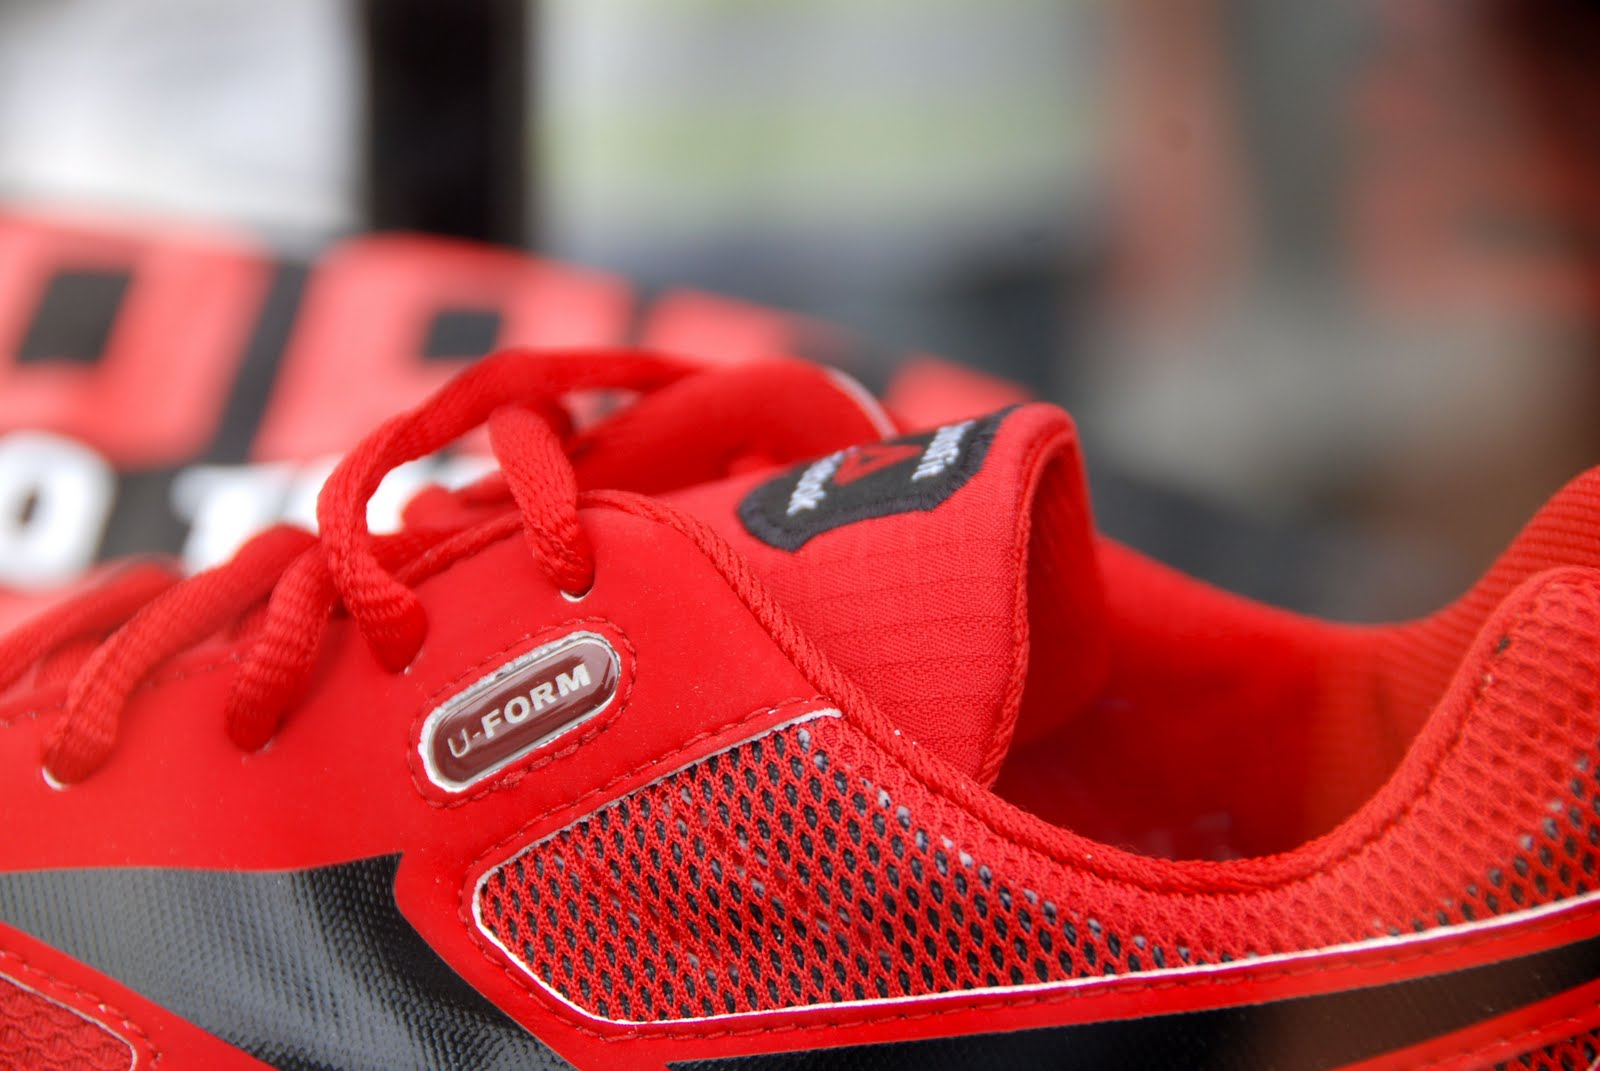 new reebok crossfit shoes